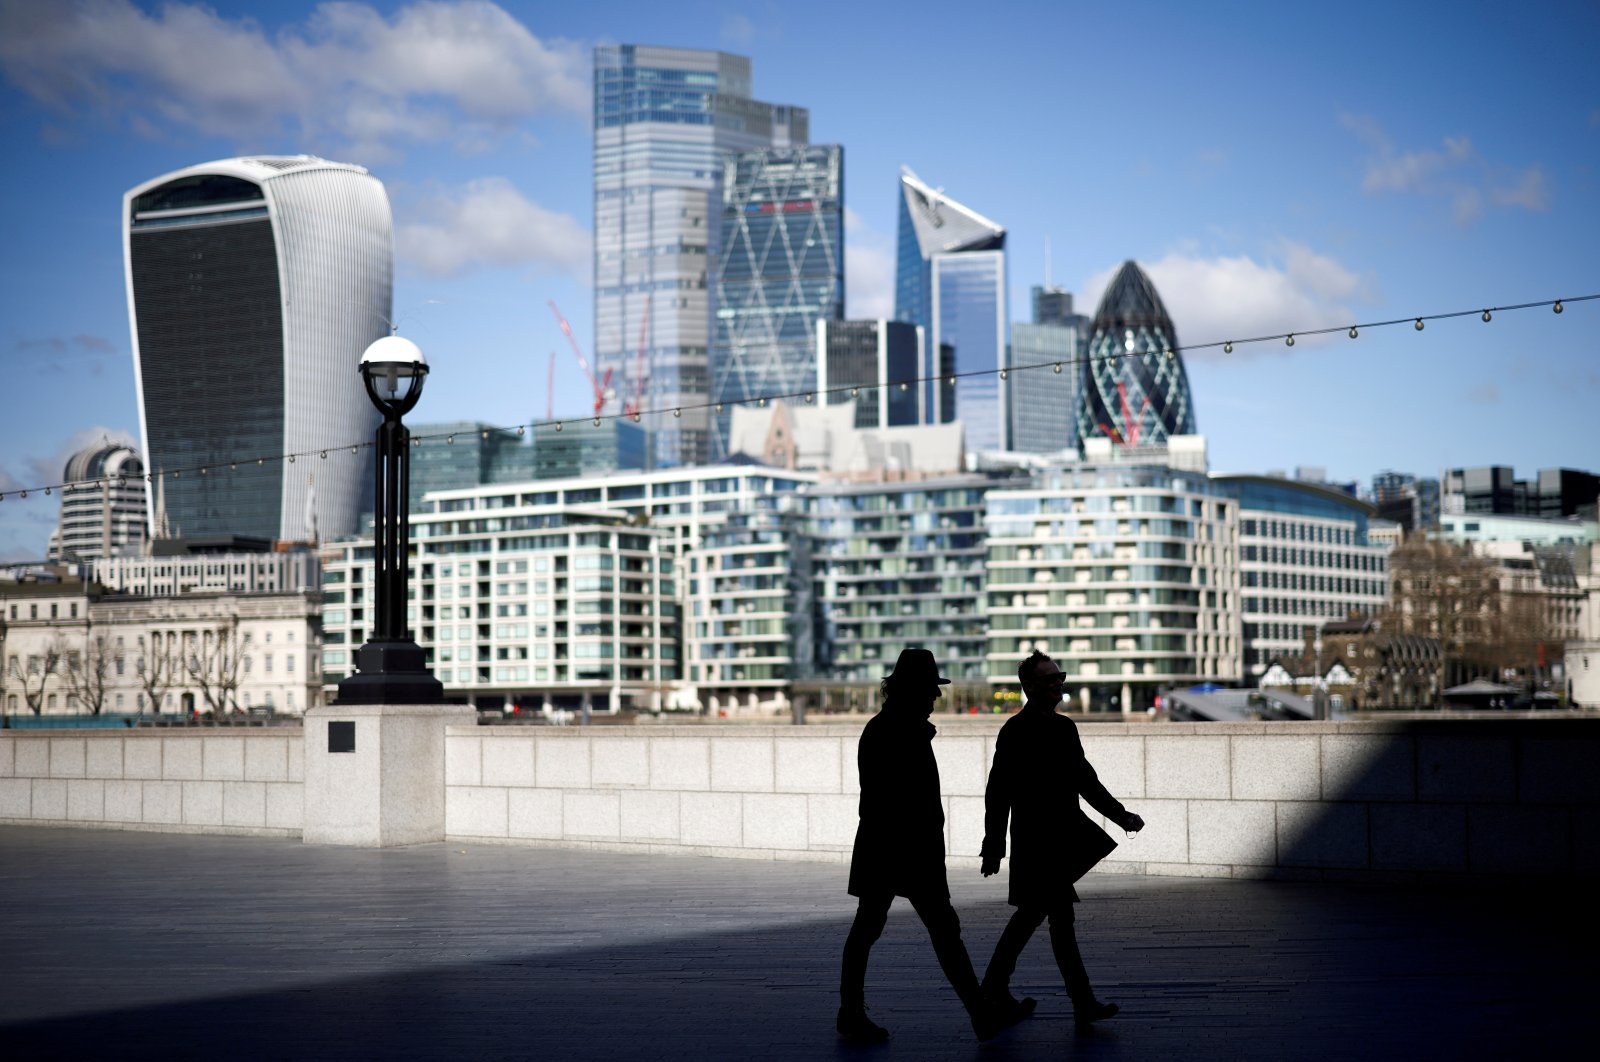 People are seen in the City of London financial district in London, the U.K., March 19, 2021. (Reuters Photo)